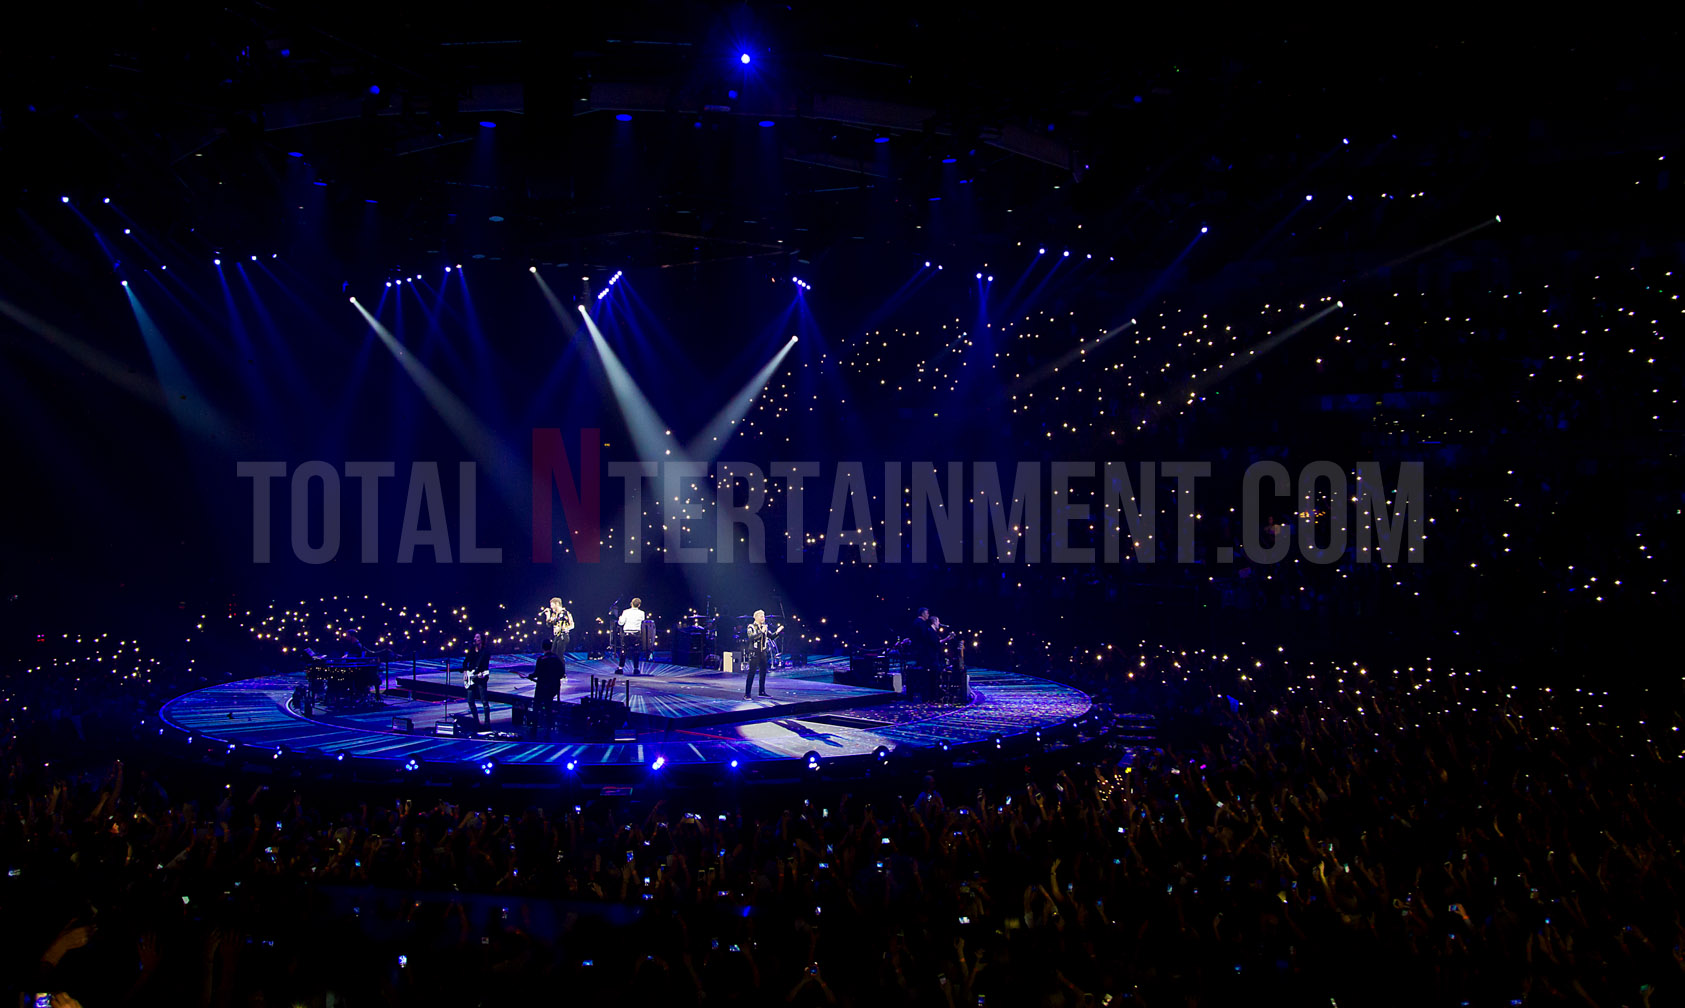 Take That, Liverpool, Concert, Live Event